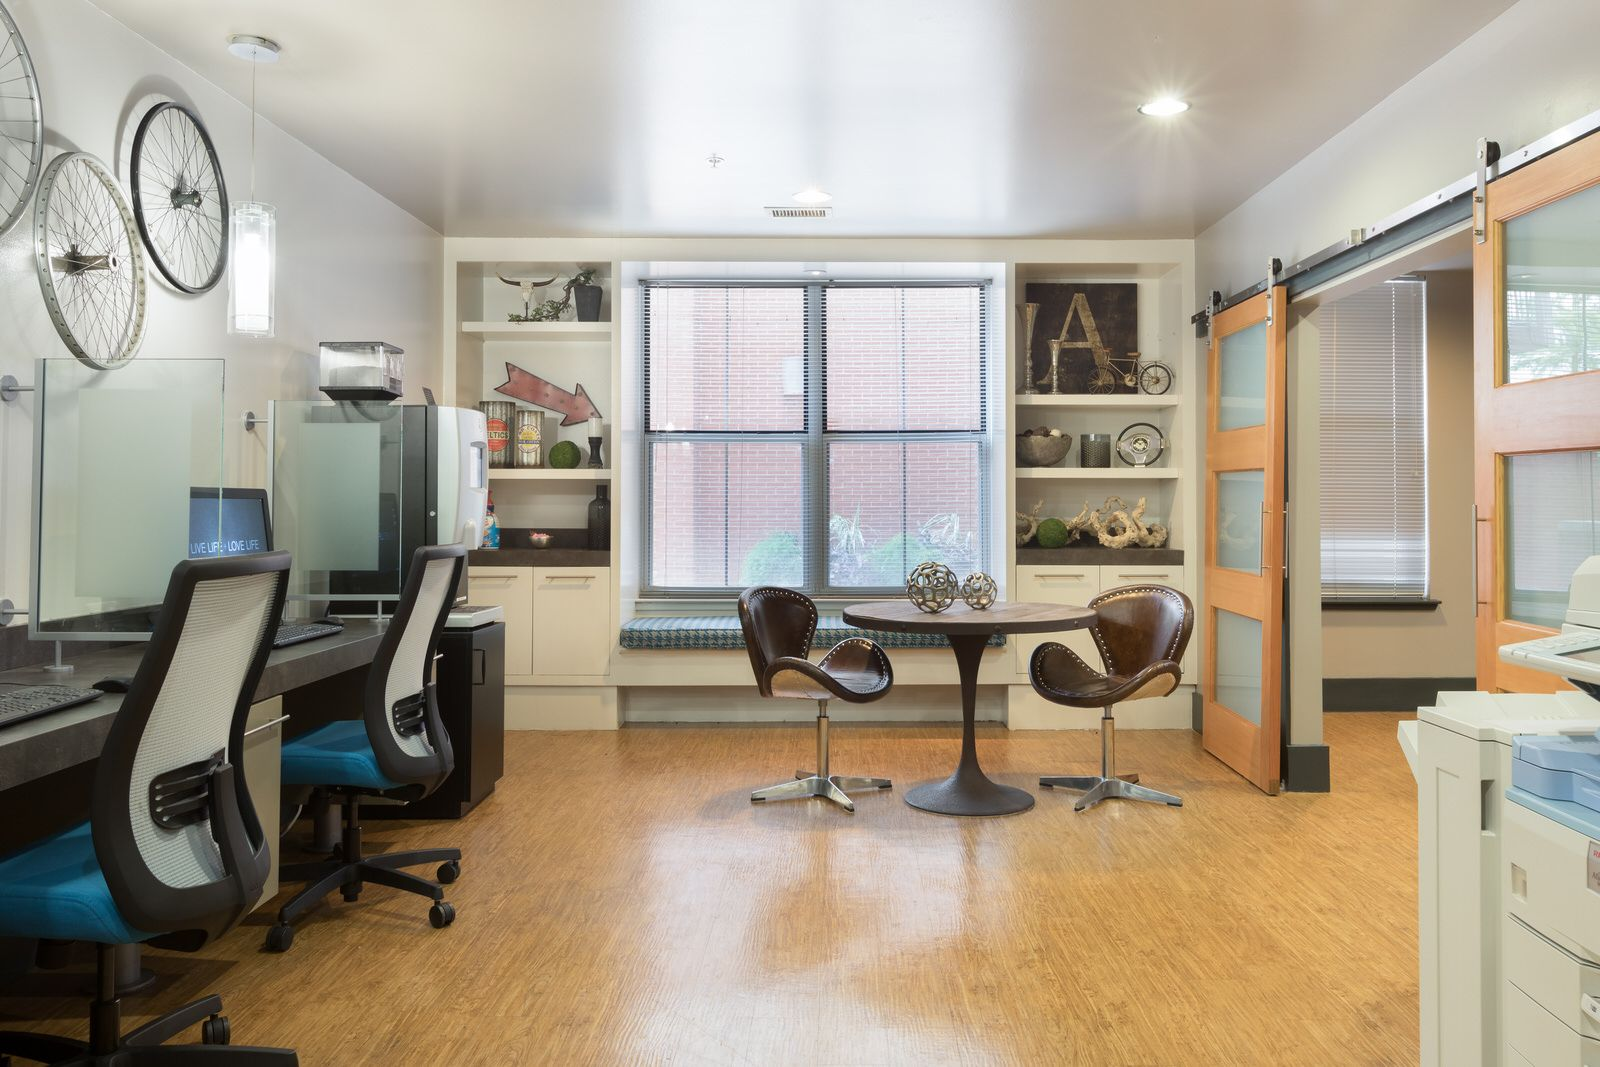 Our business center is stylishly furnished. Austin